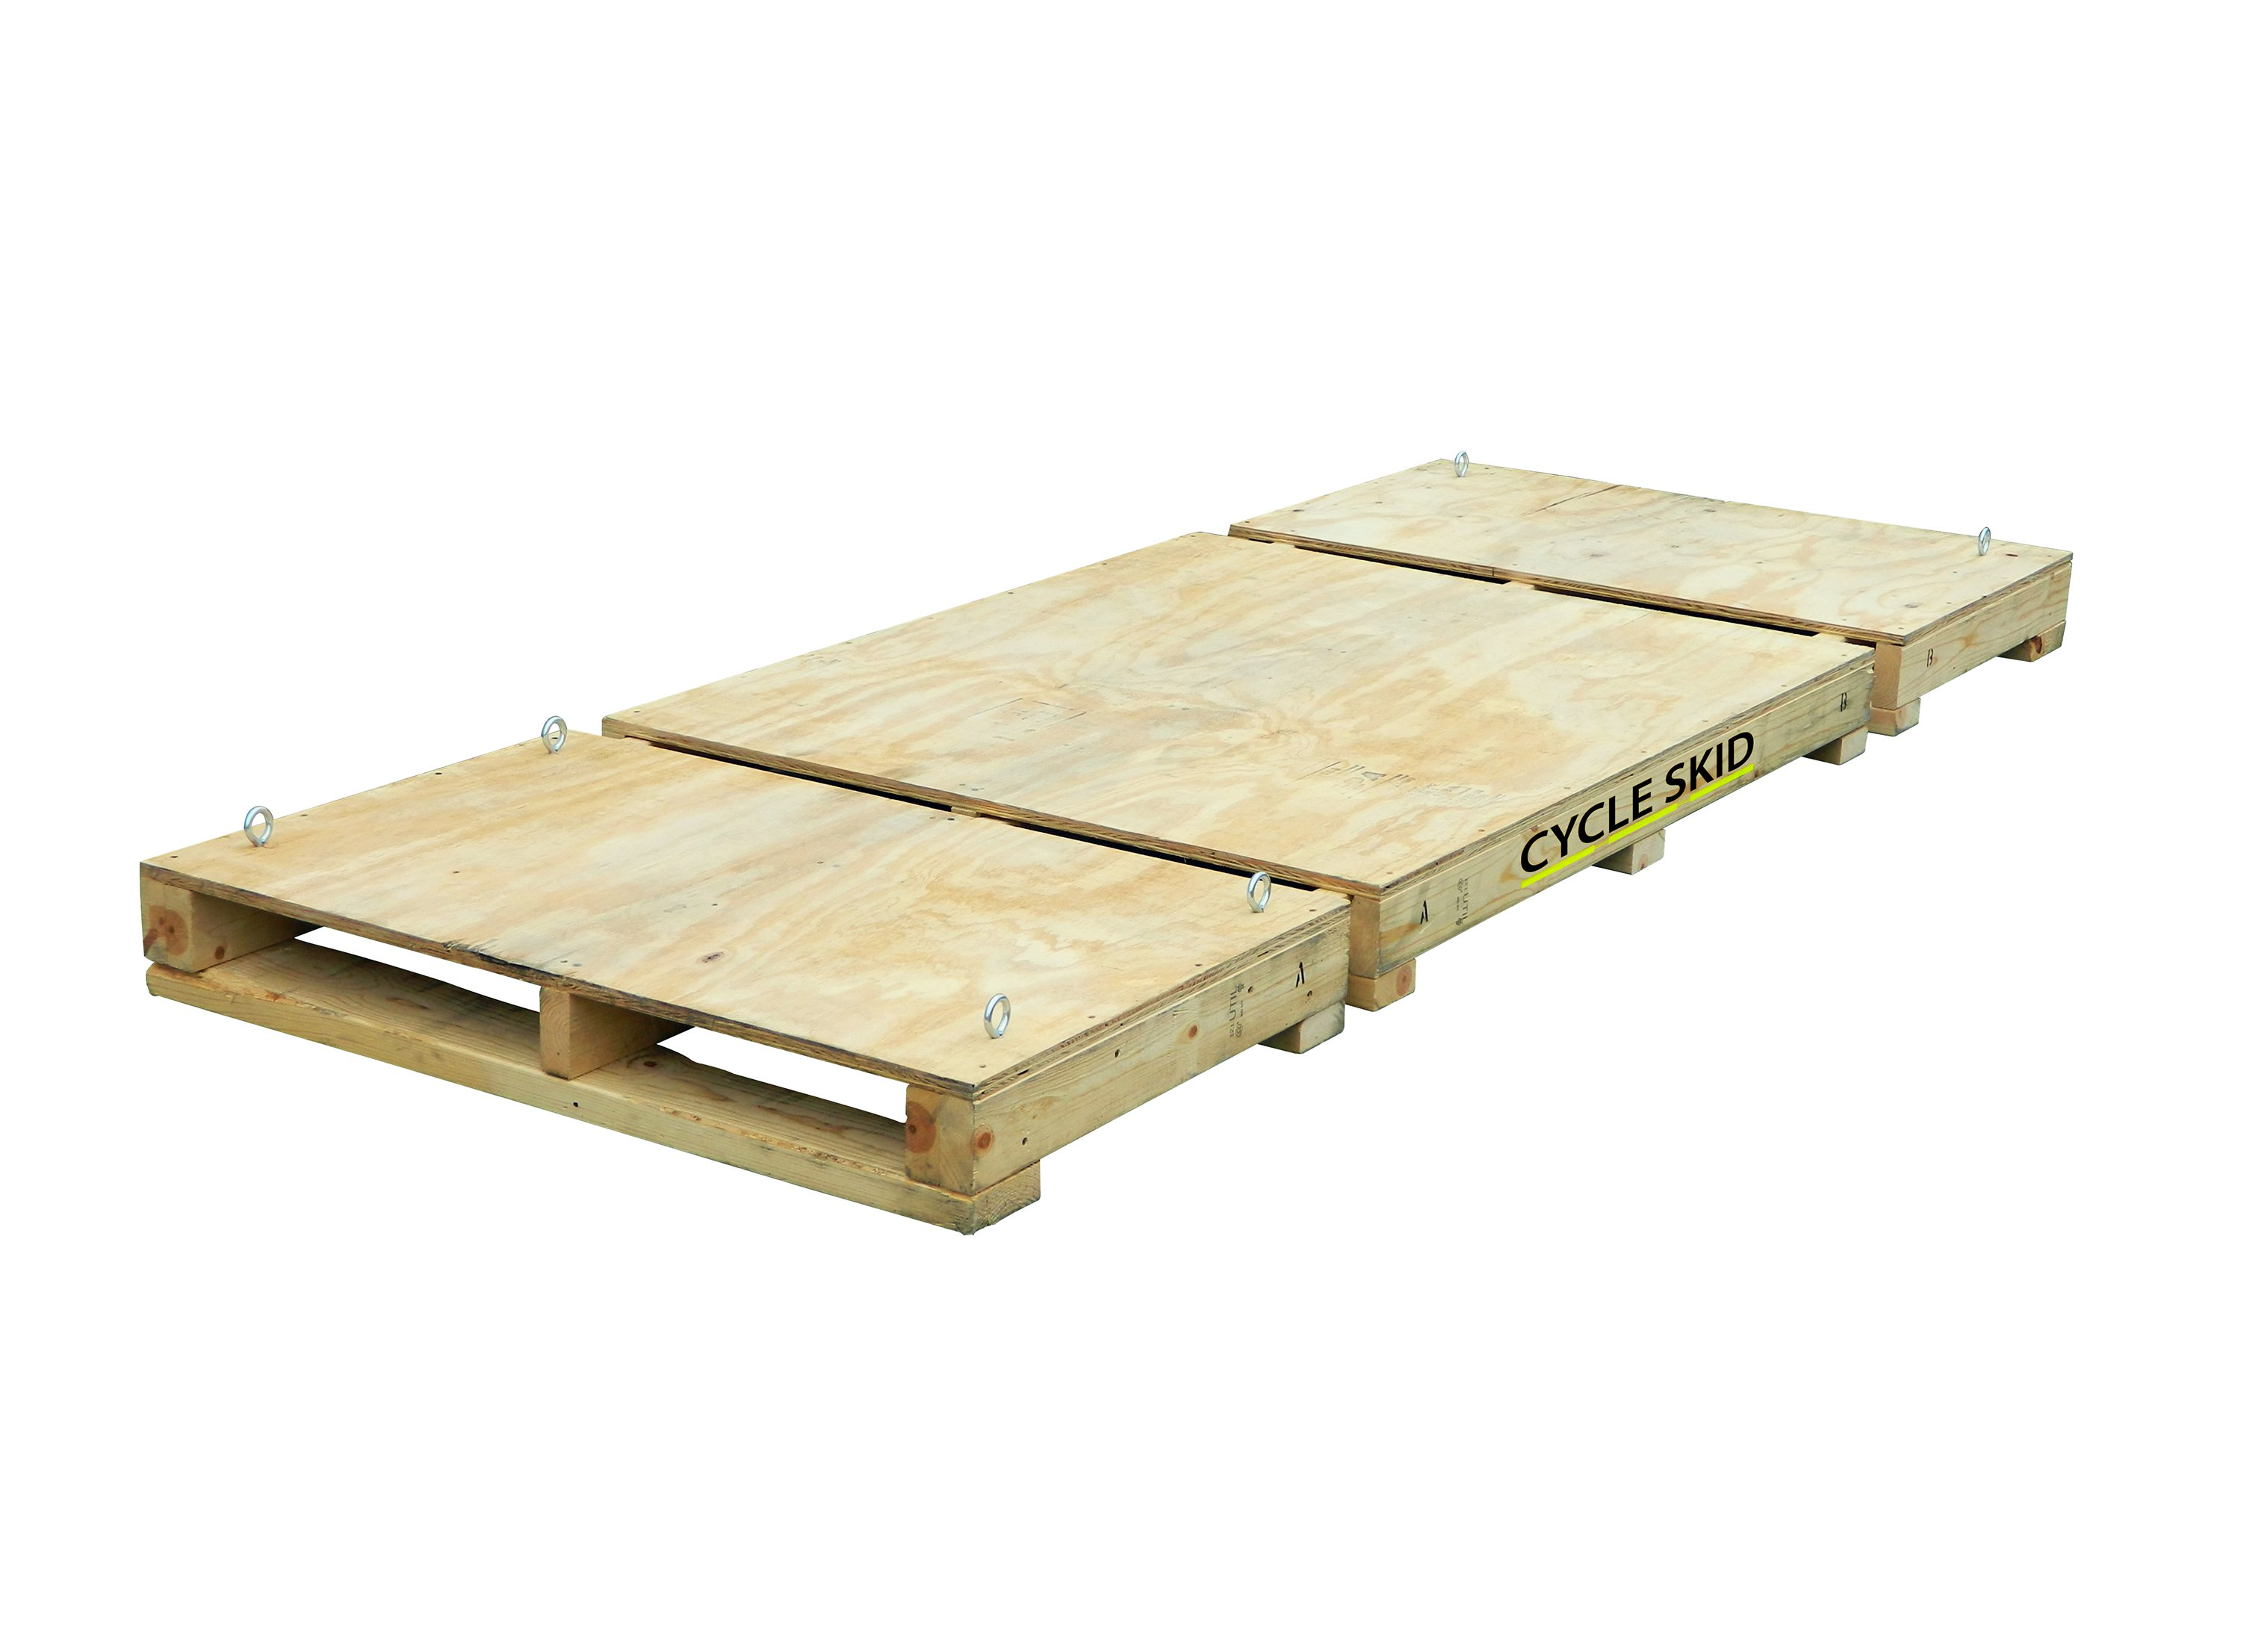 skid pallet. universal-fit bike cover \u2022 forklift-friendly 4-way entry pallet jack-friendly 2-way entry. price: $449.00. shipping: free in contiguous united states skid